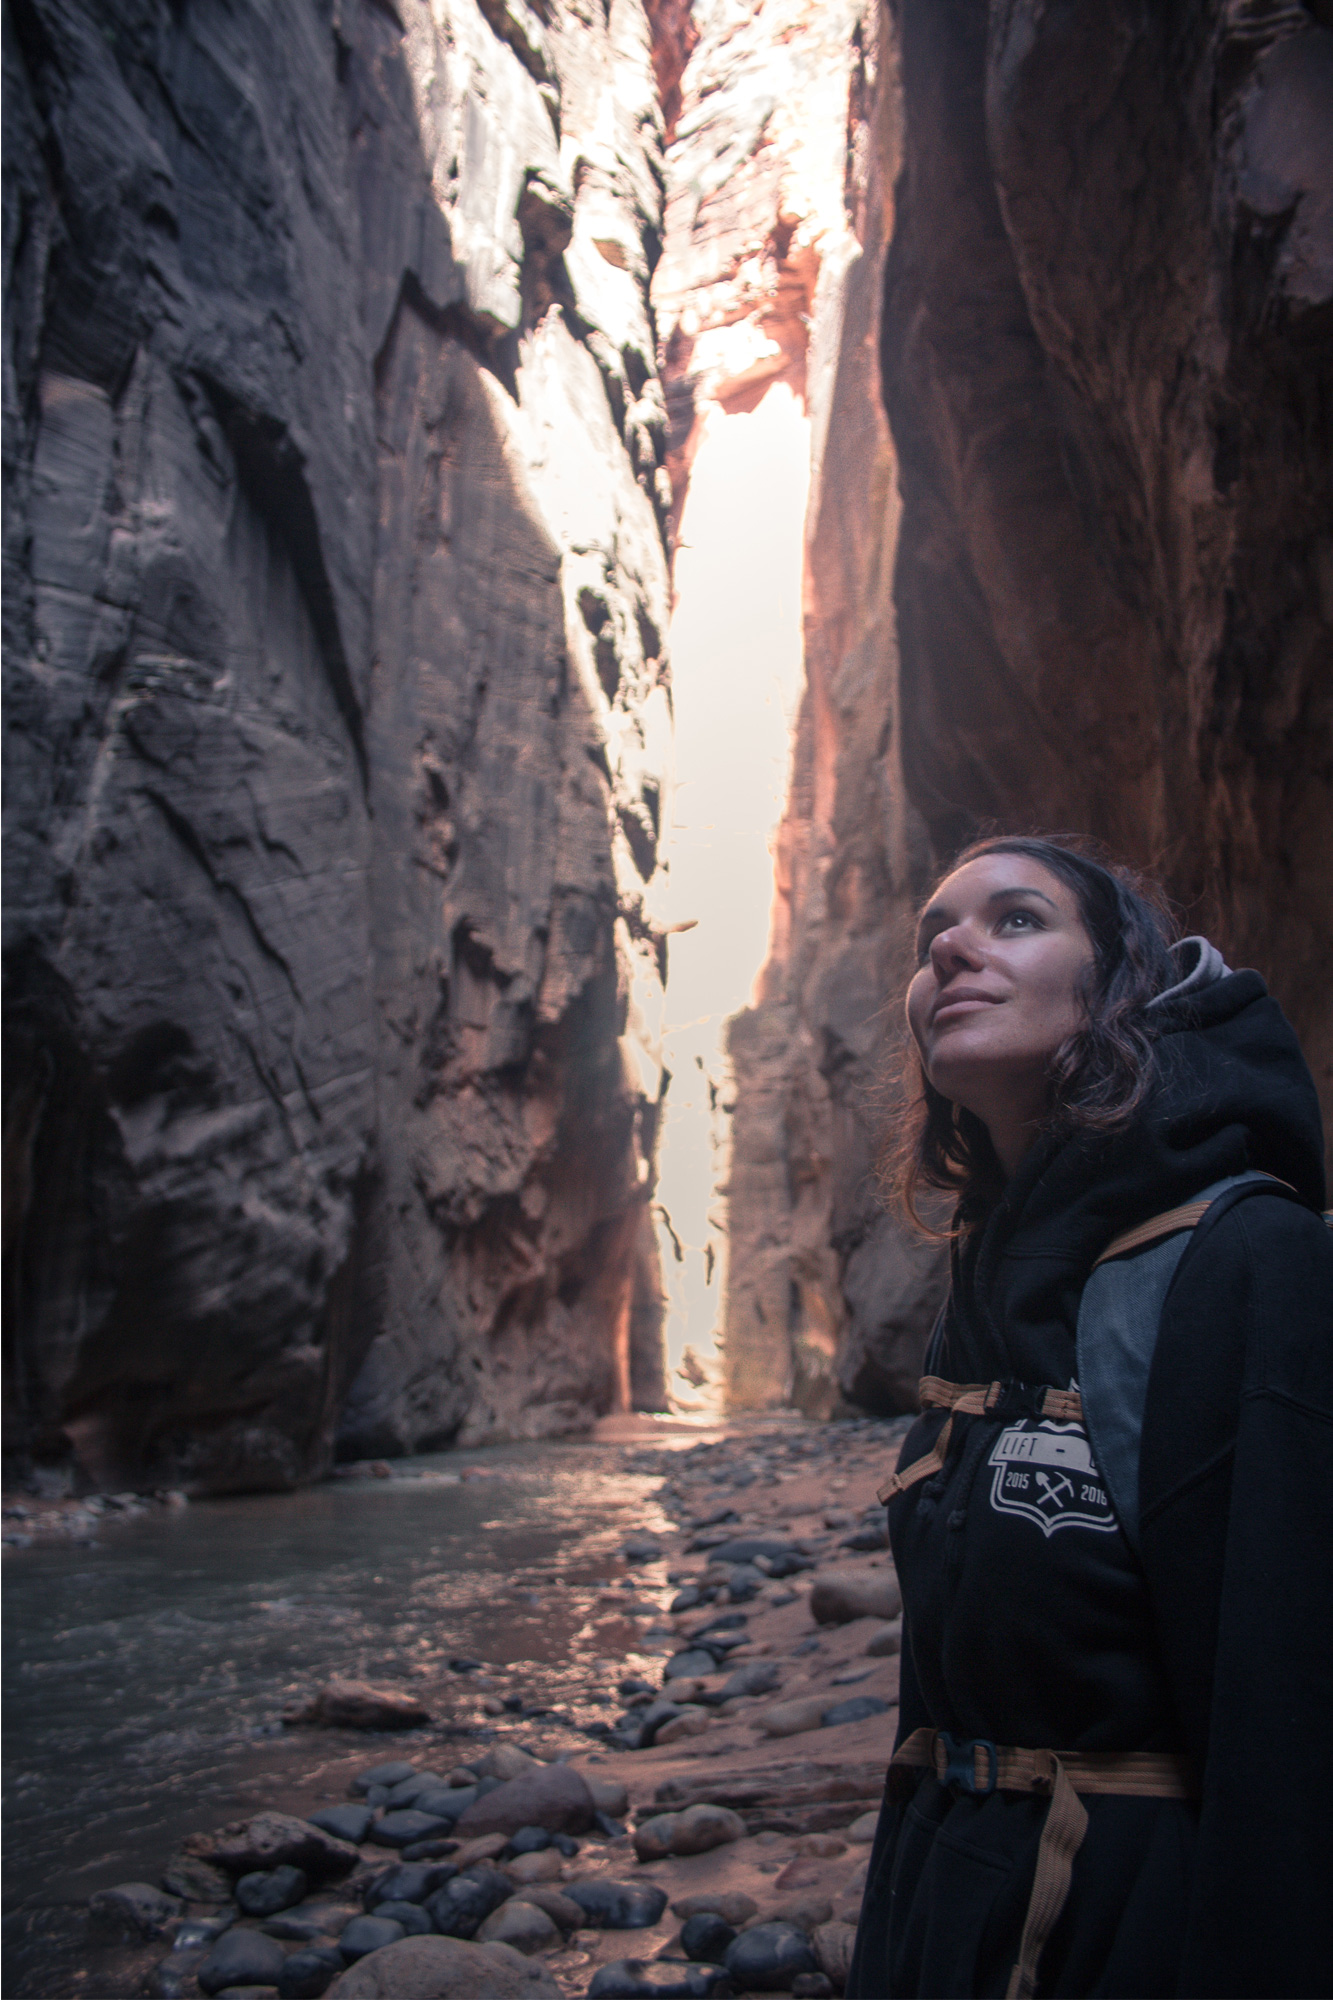 The Narrows, Zion. One of the Most beautiful US national parks